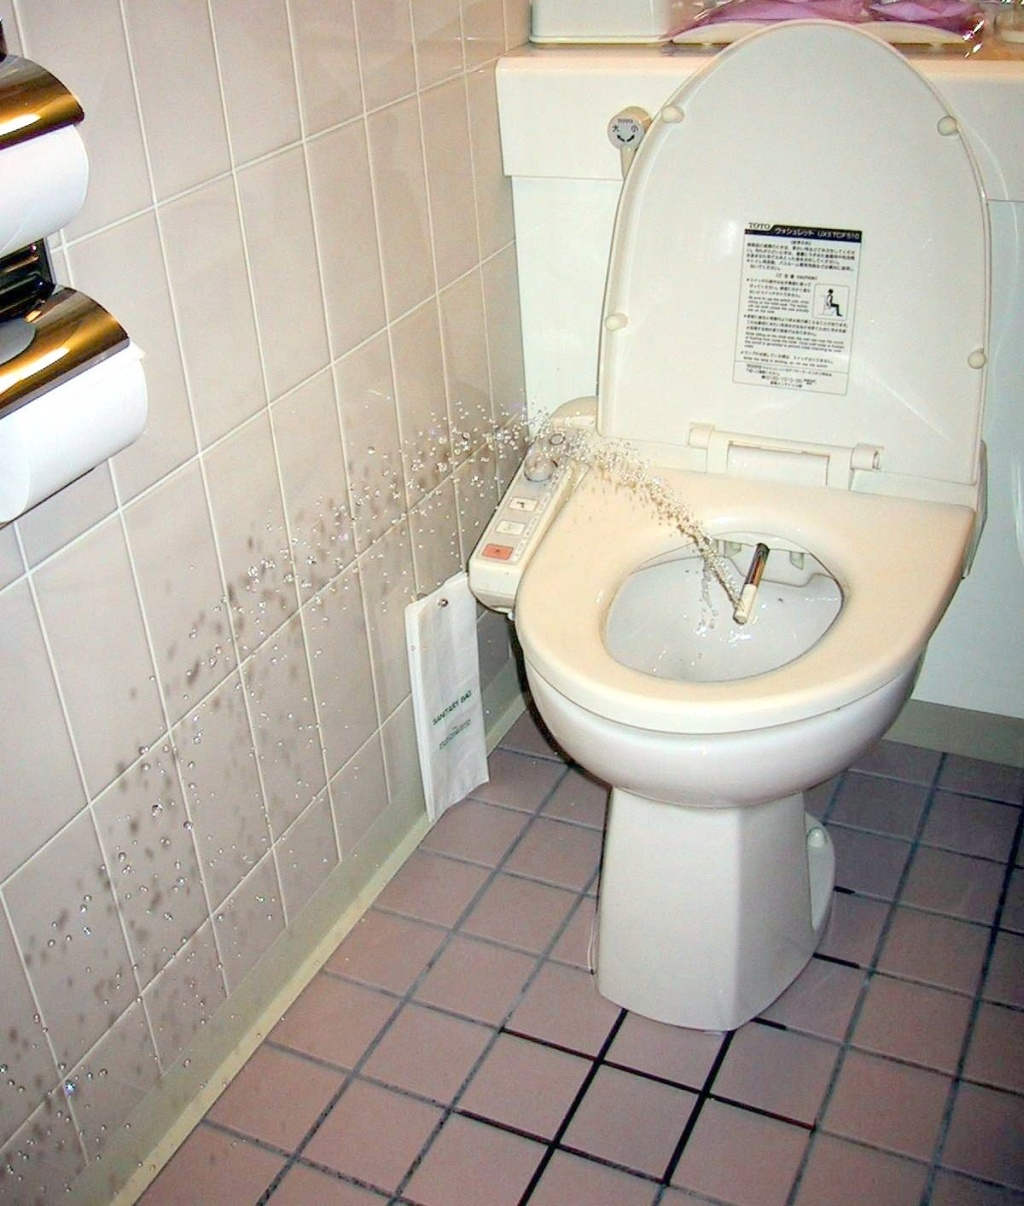 http://upload.wikimedia.org/wikipedia/commons/a/a8/JapaneseToiletBidet.jpg